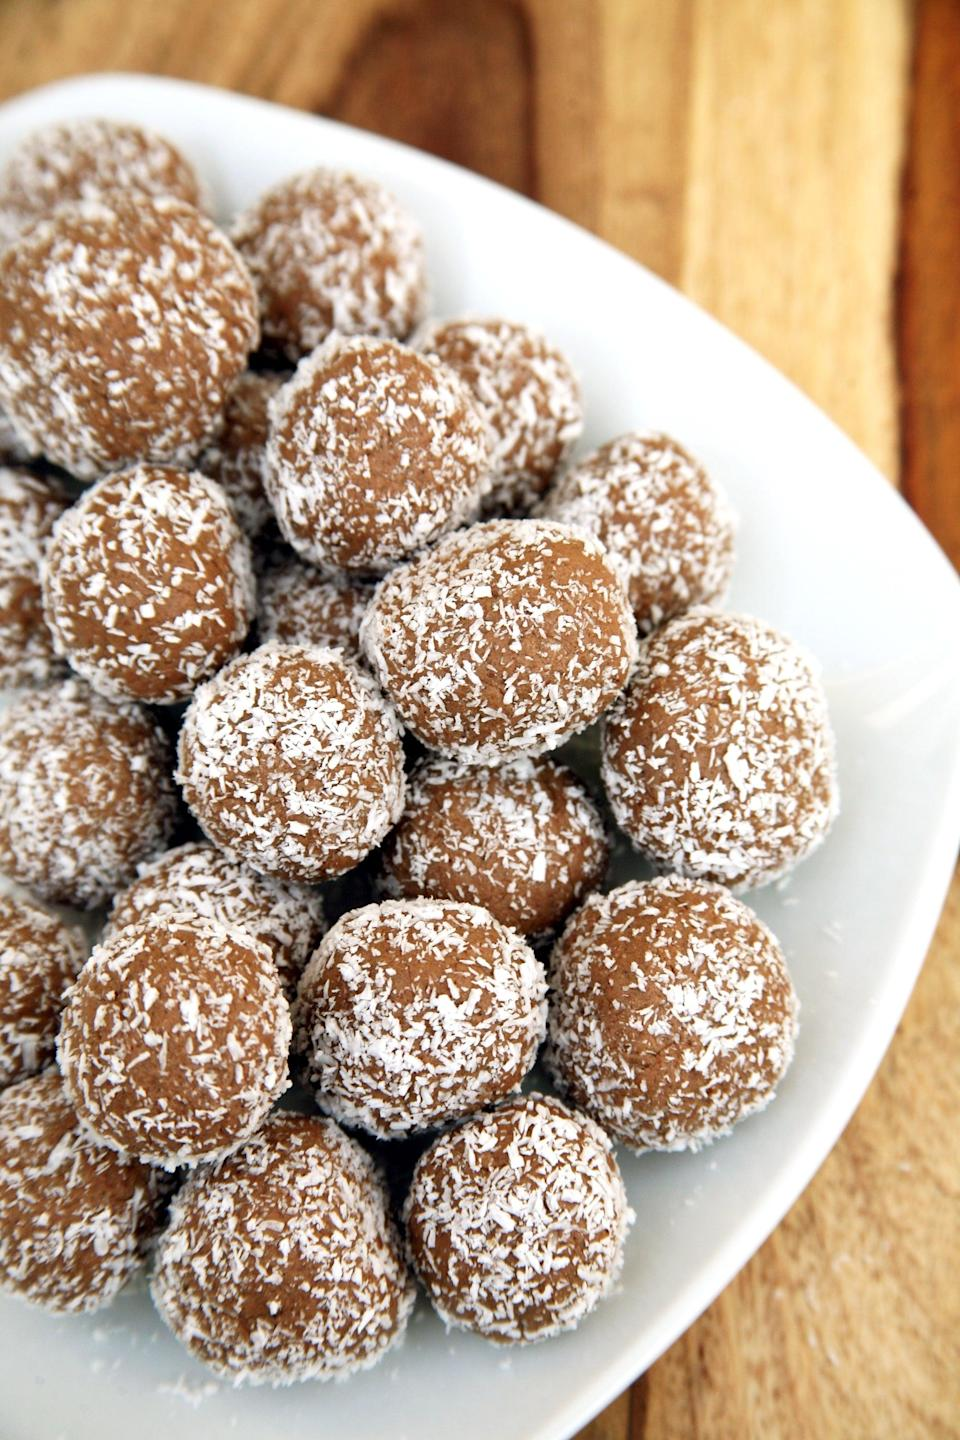 """<p>If you have an obsession with all things chewy and you also have a love affair with chocolate, make these protein balls that taste like Tootsie Rolls.</p> <p><strong>Get the recipe:</strong> <a href=""""https://www.popsugar.com/fitness/Chocolate-Coconut-Protein-Balls-40232548"""" class=""""link rapid-noclick-resp"""" rel=""""nofollow noopener"""" target=""""_blank"""" data-ylk=""""slk:coconut-covered chocolate almond protein balls"""">coconut-covered chocolate almond protein balls</a></p>"""